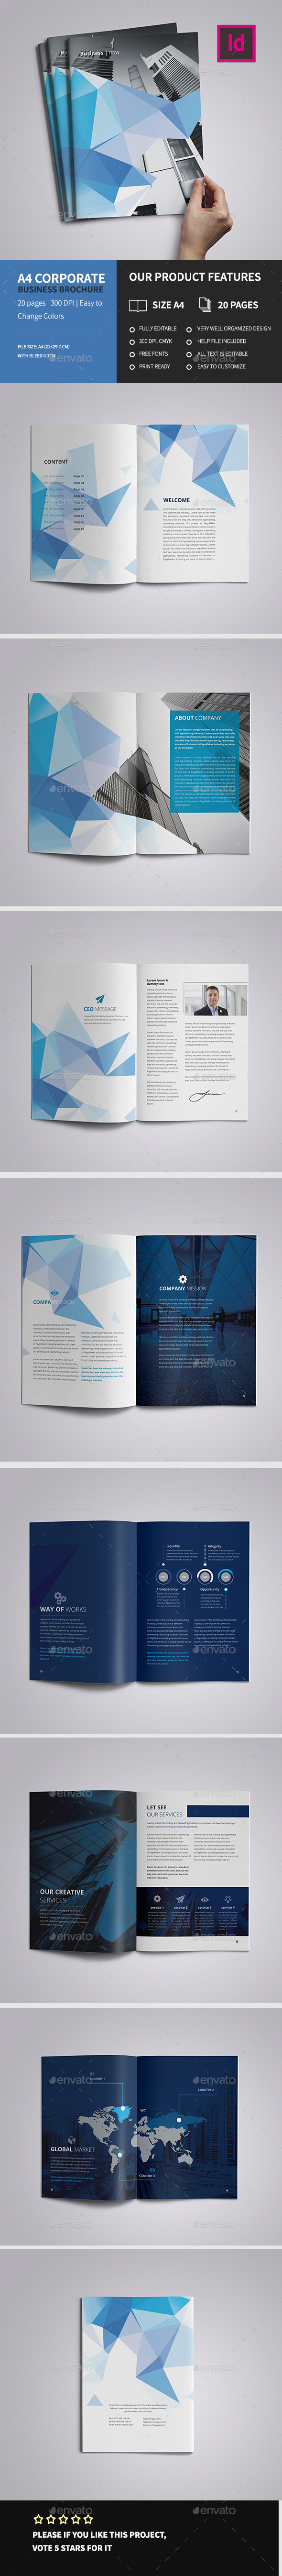 A4 Corporate Business Brochure - Corporate Brochures